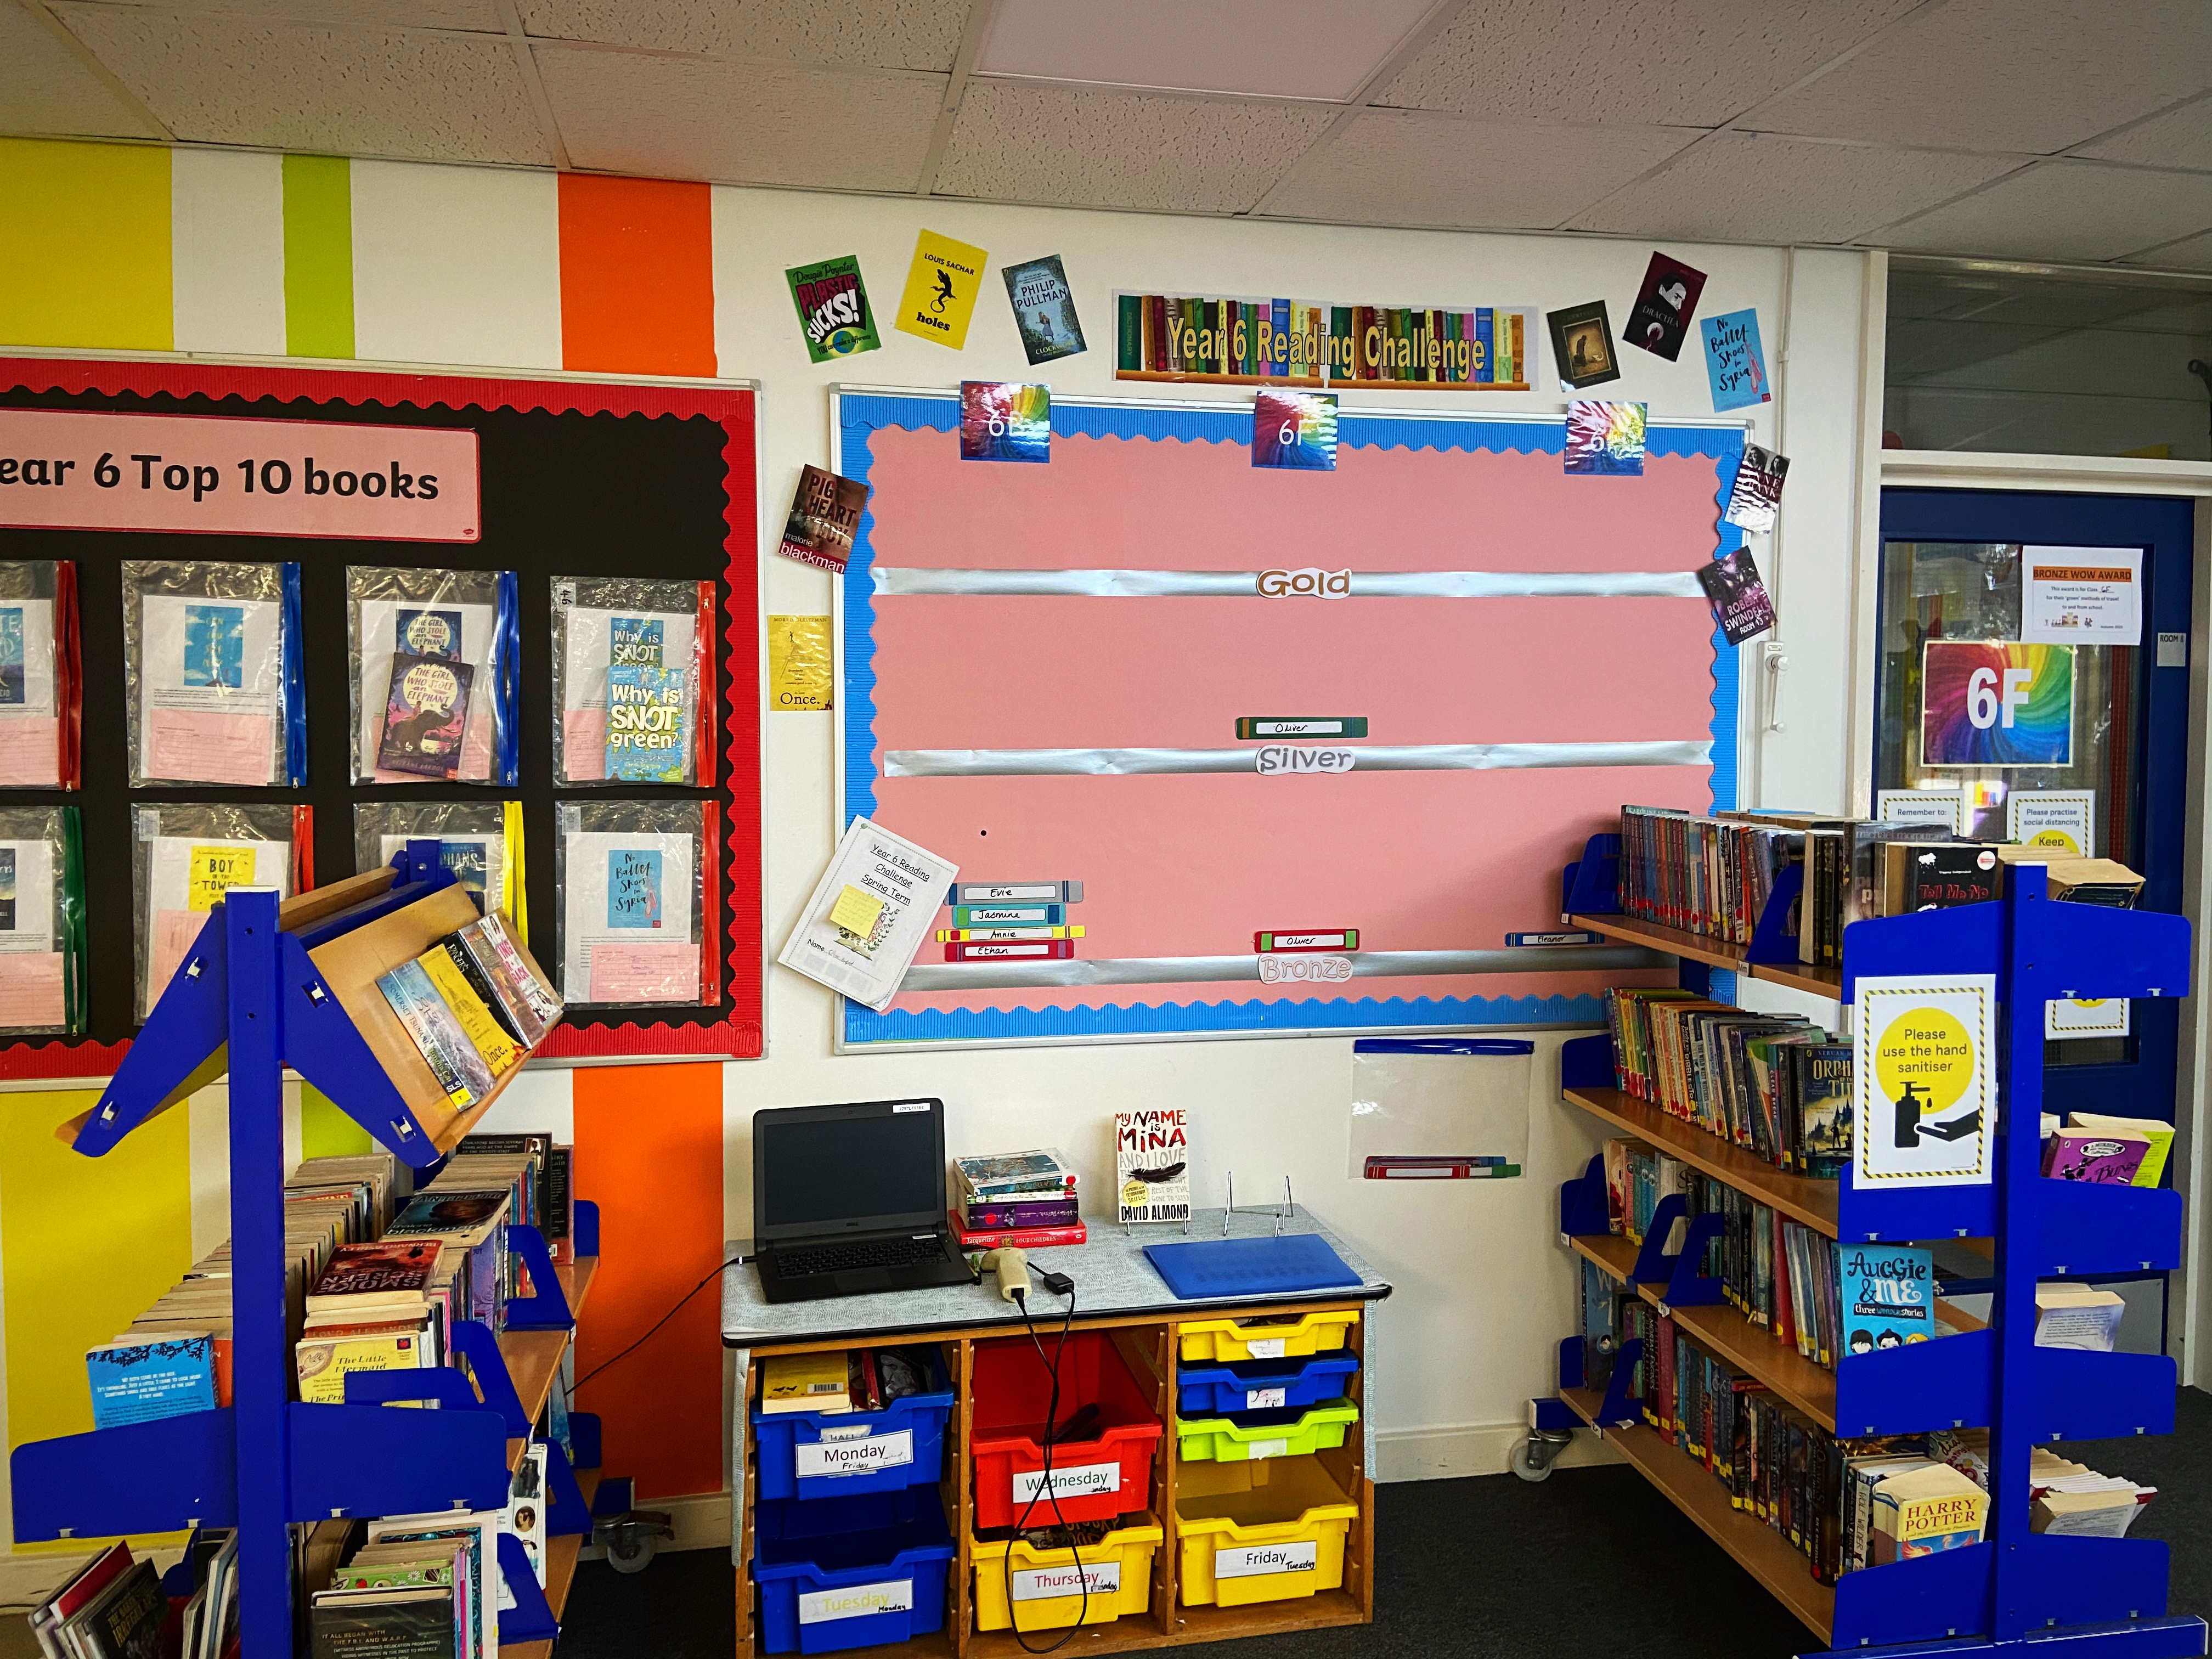 Year group reading challenge displays to promote reading